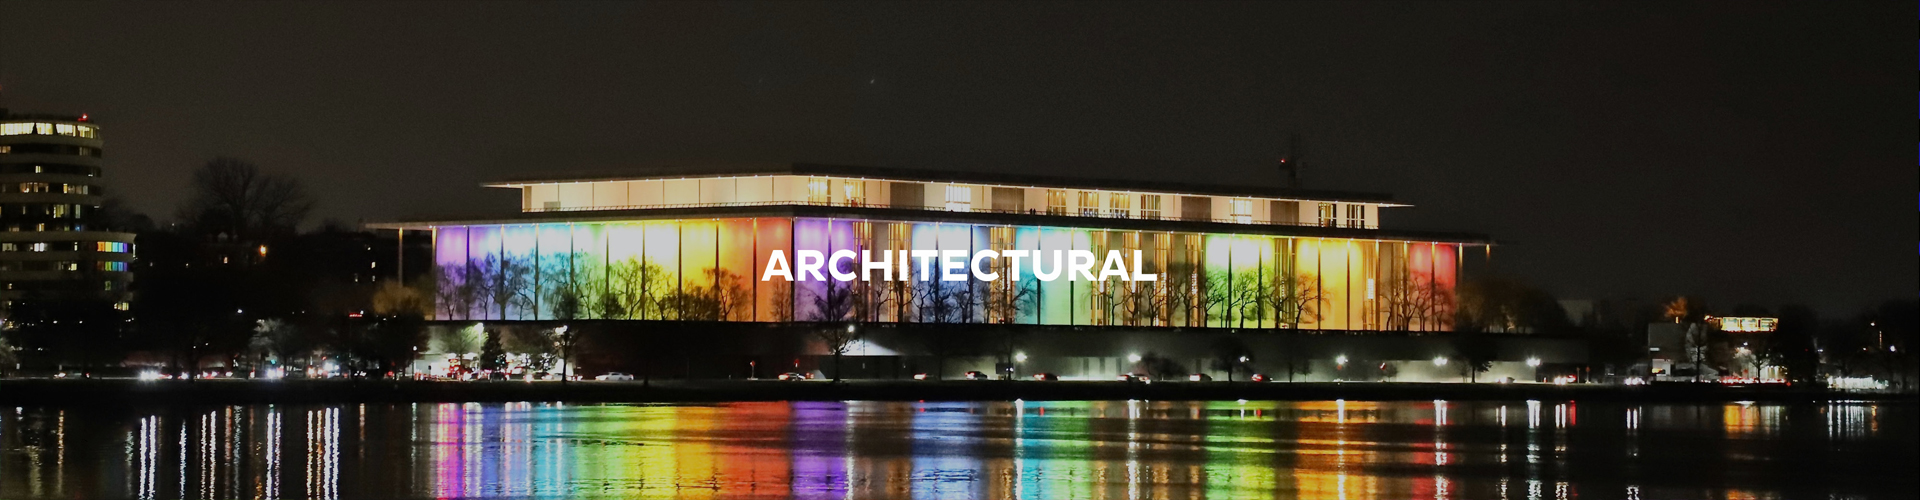 ARCHITECTURAL-FINAL-new-size